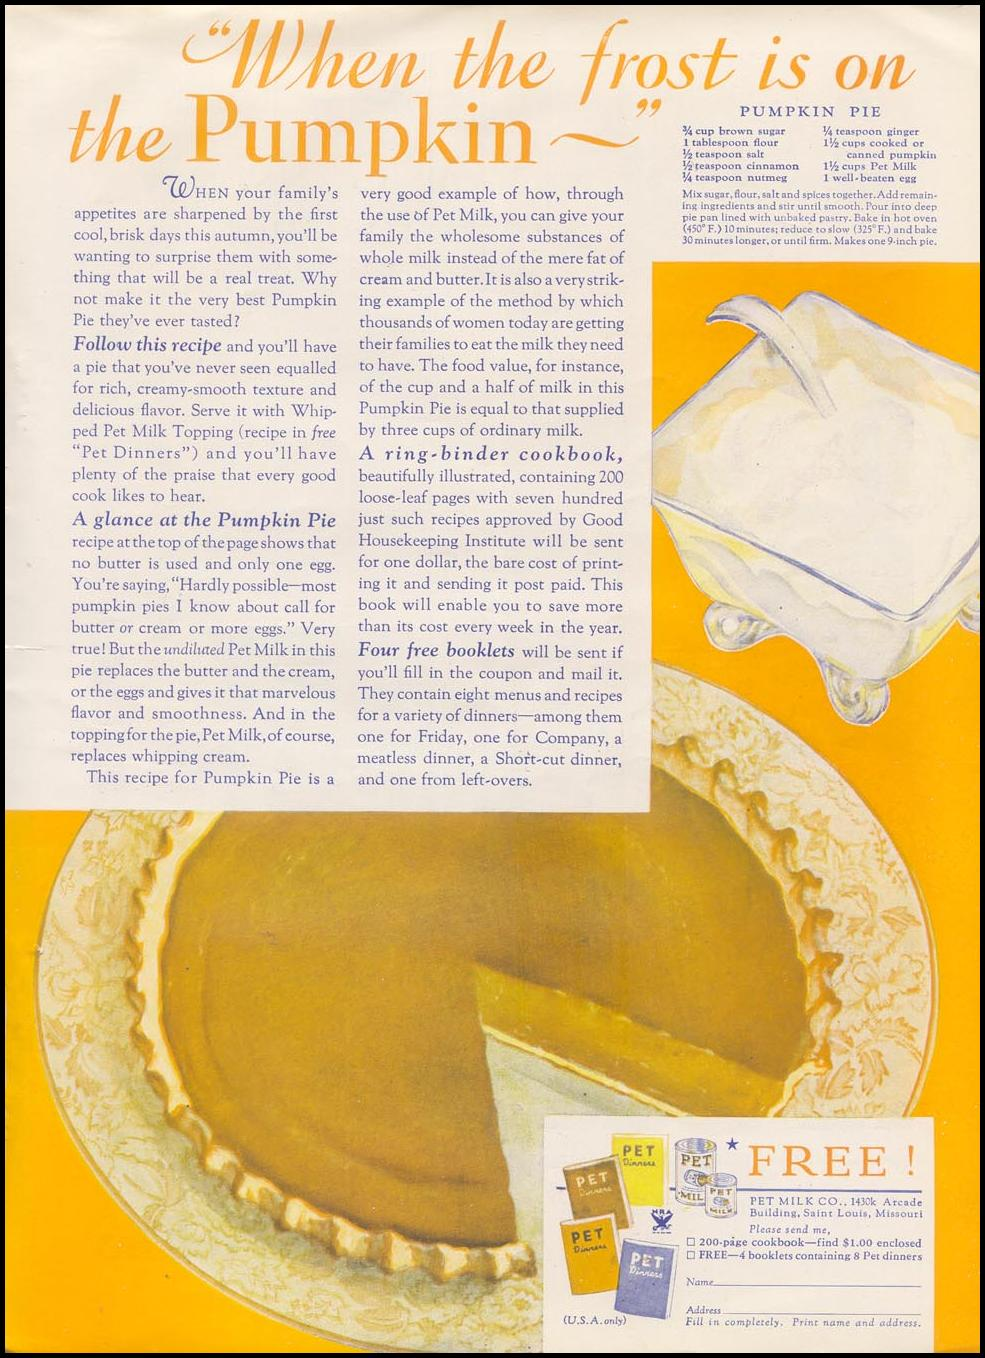 PET EVAPORATED MILK GOOD HOUSEKEEPING 11/01/1933